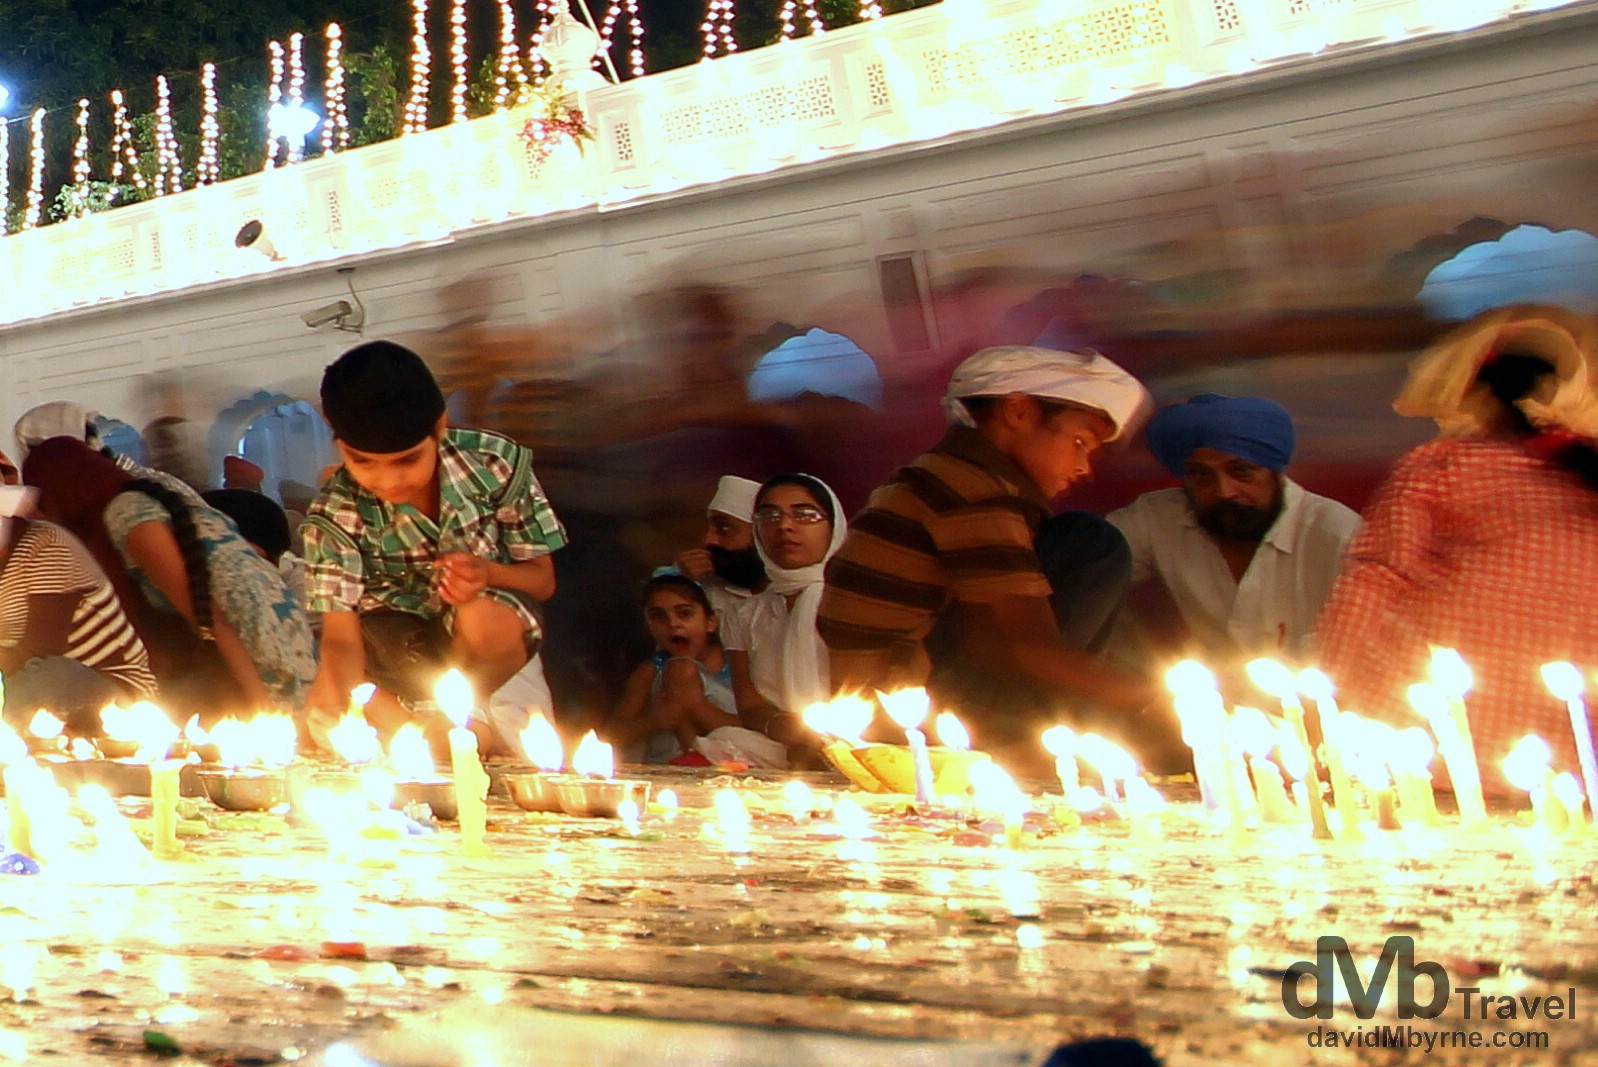 Lighting candles by the edge of the Amrit Sarovar (Pool of Nectar) in the Golden Temple complex, Amritsar, India. October 9th 2012.